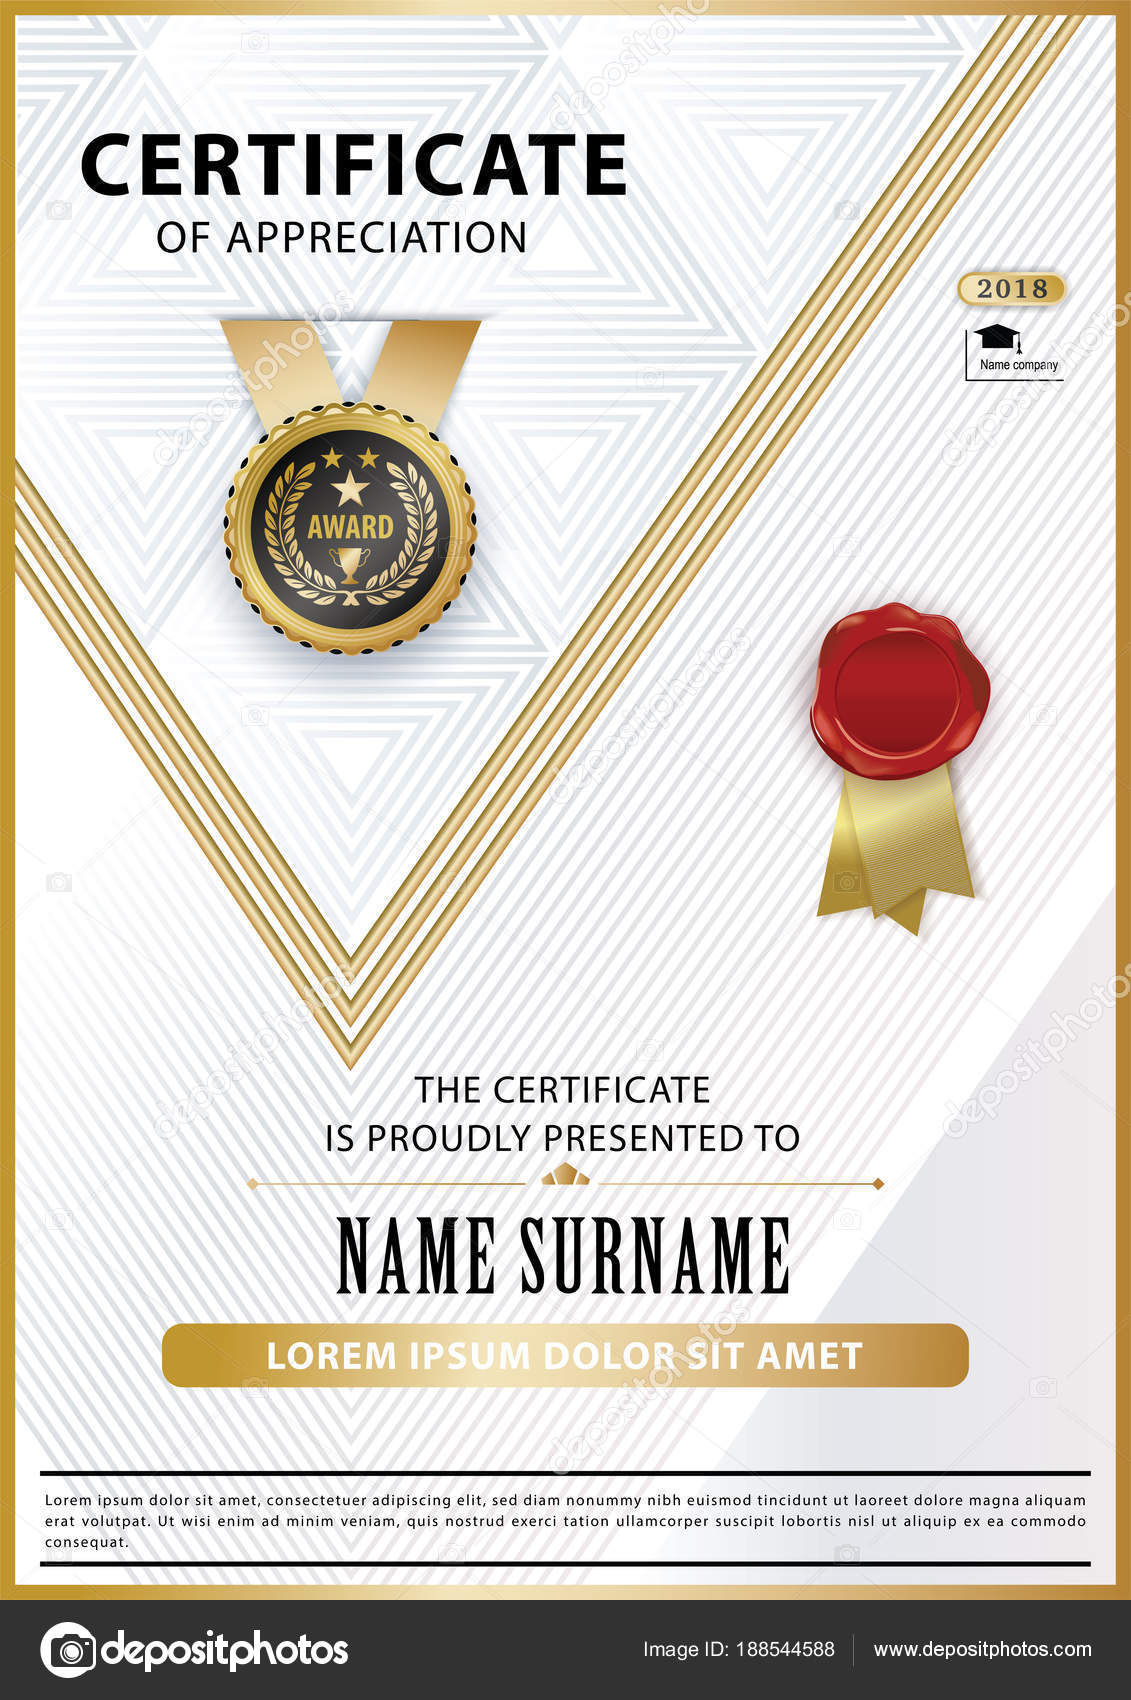 Official White Certificate Of Appreciation Award Template With Gold